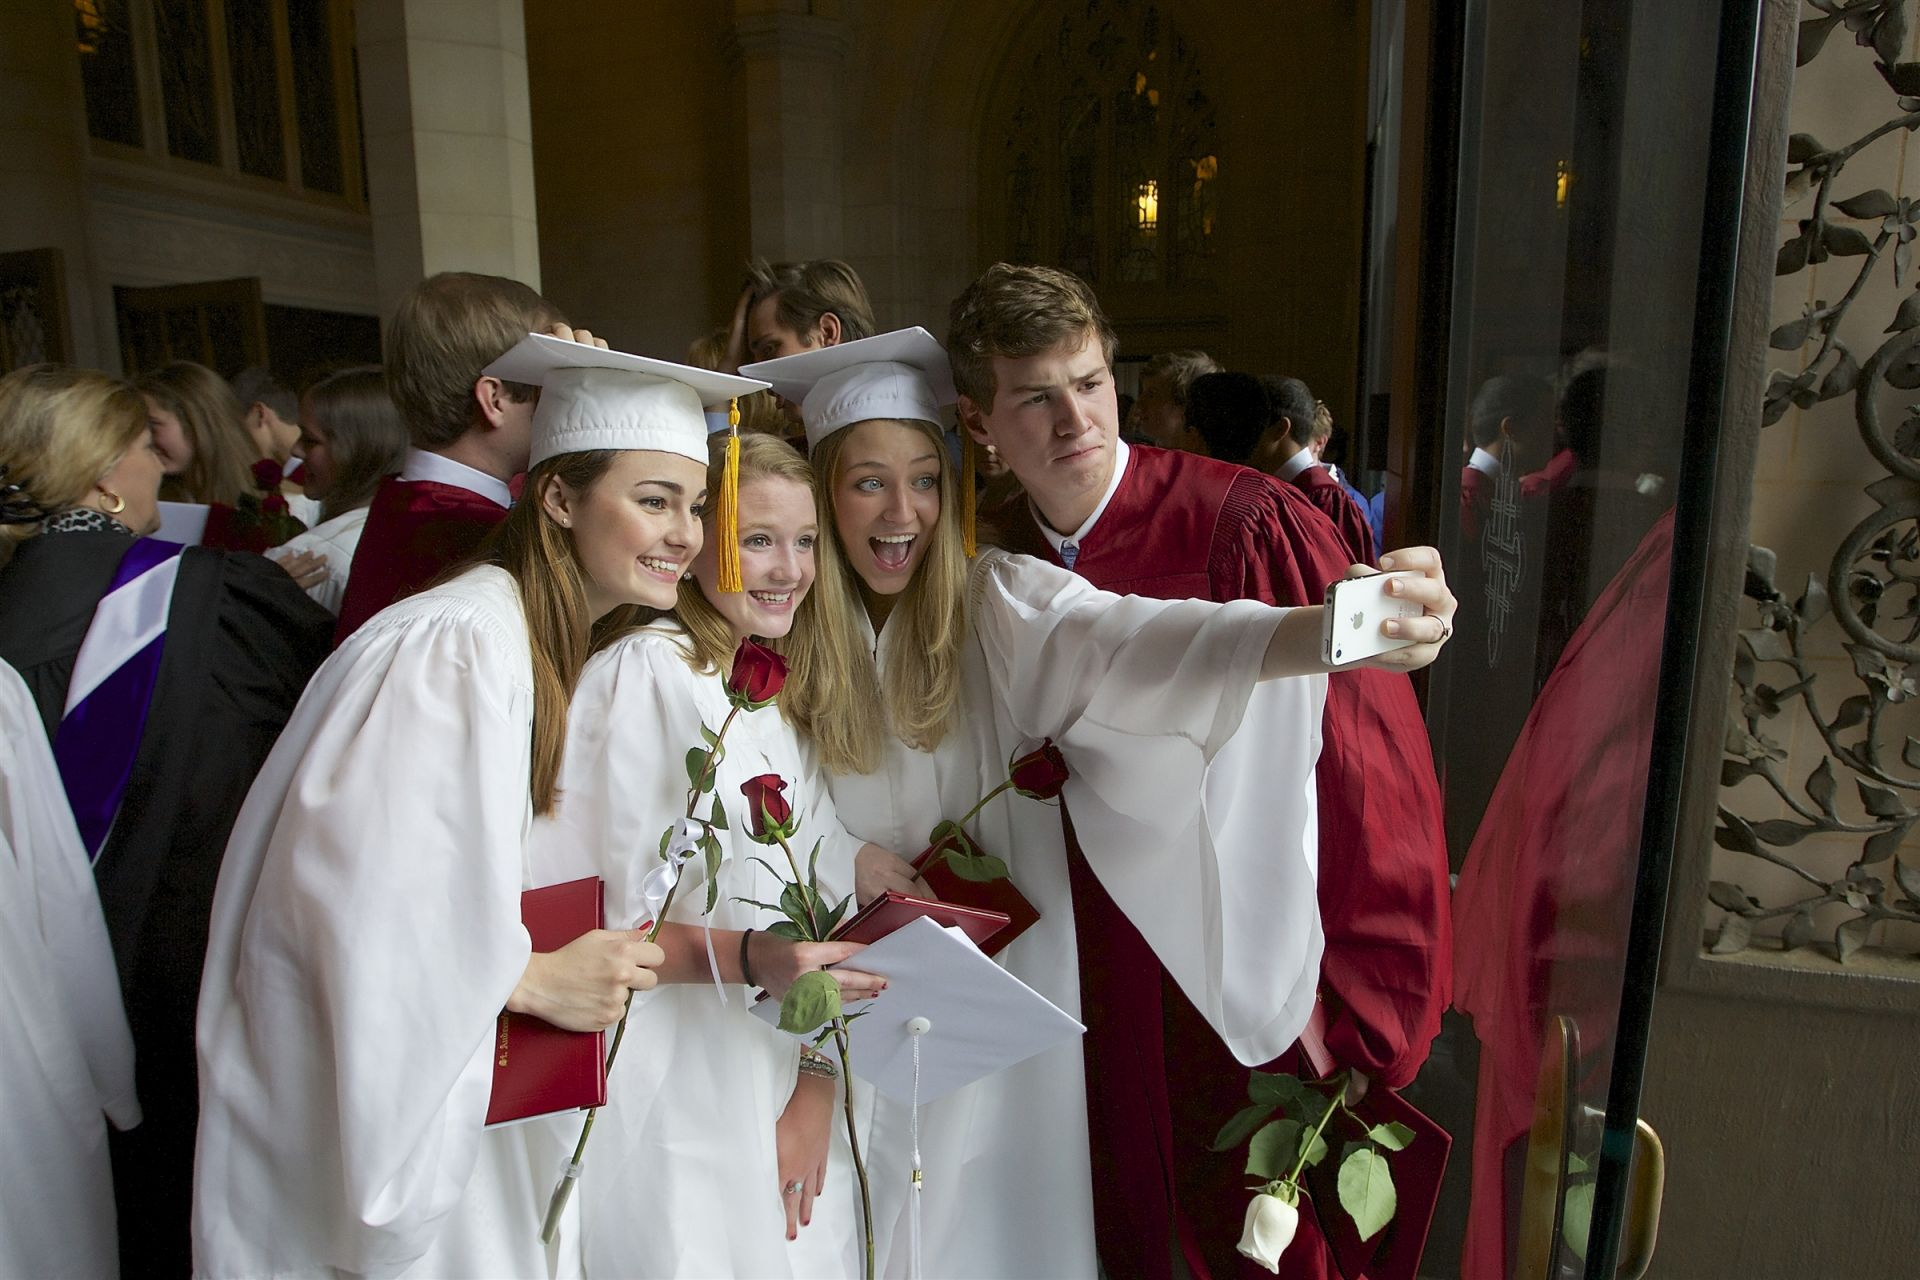 Graduating students taking a photo together - St. Andrew's Episcopal School